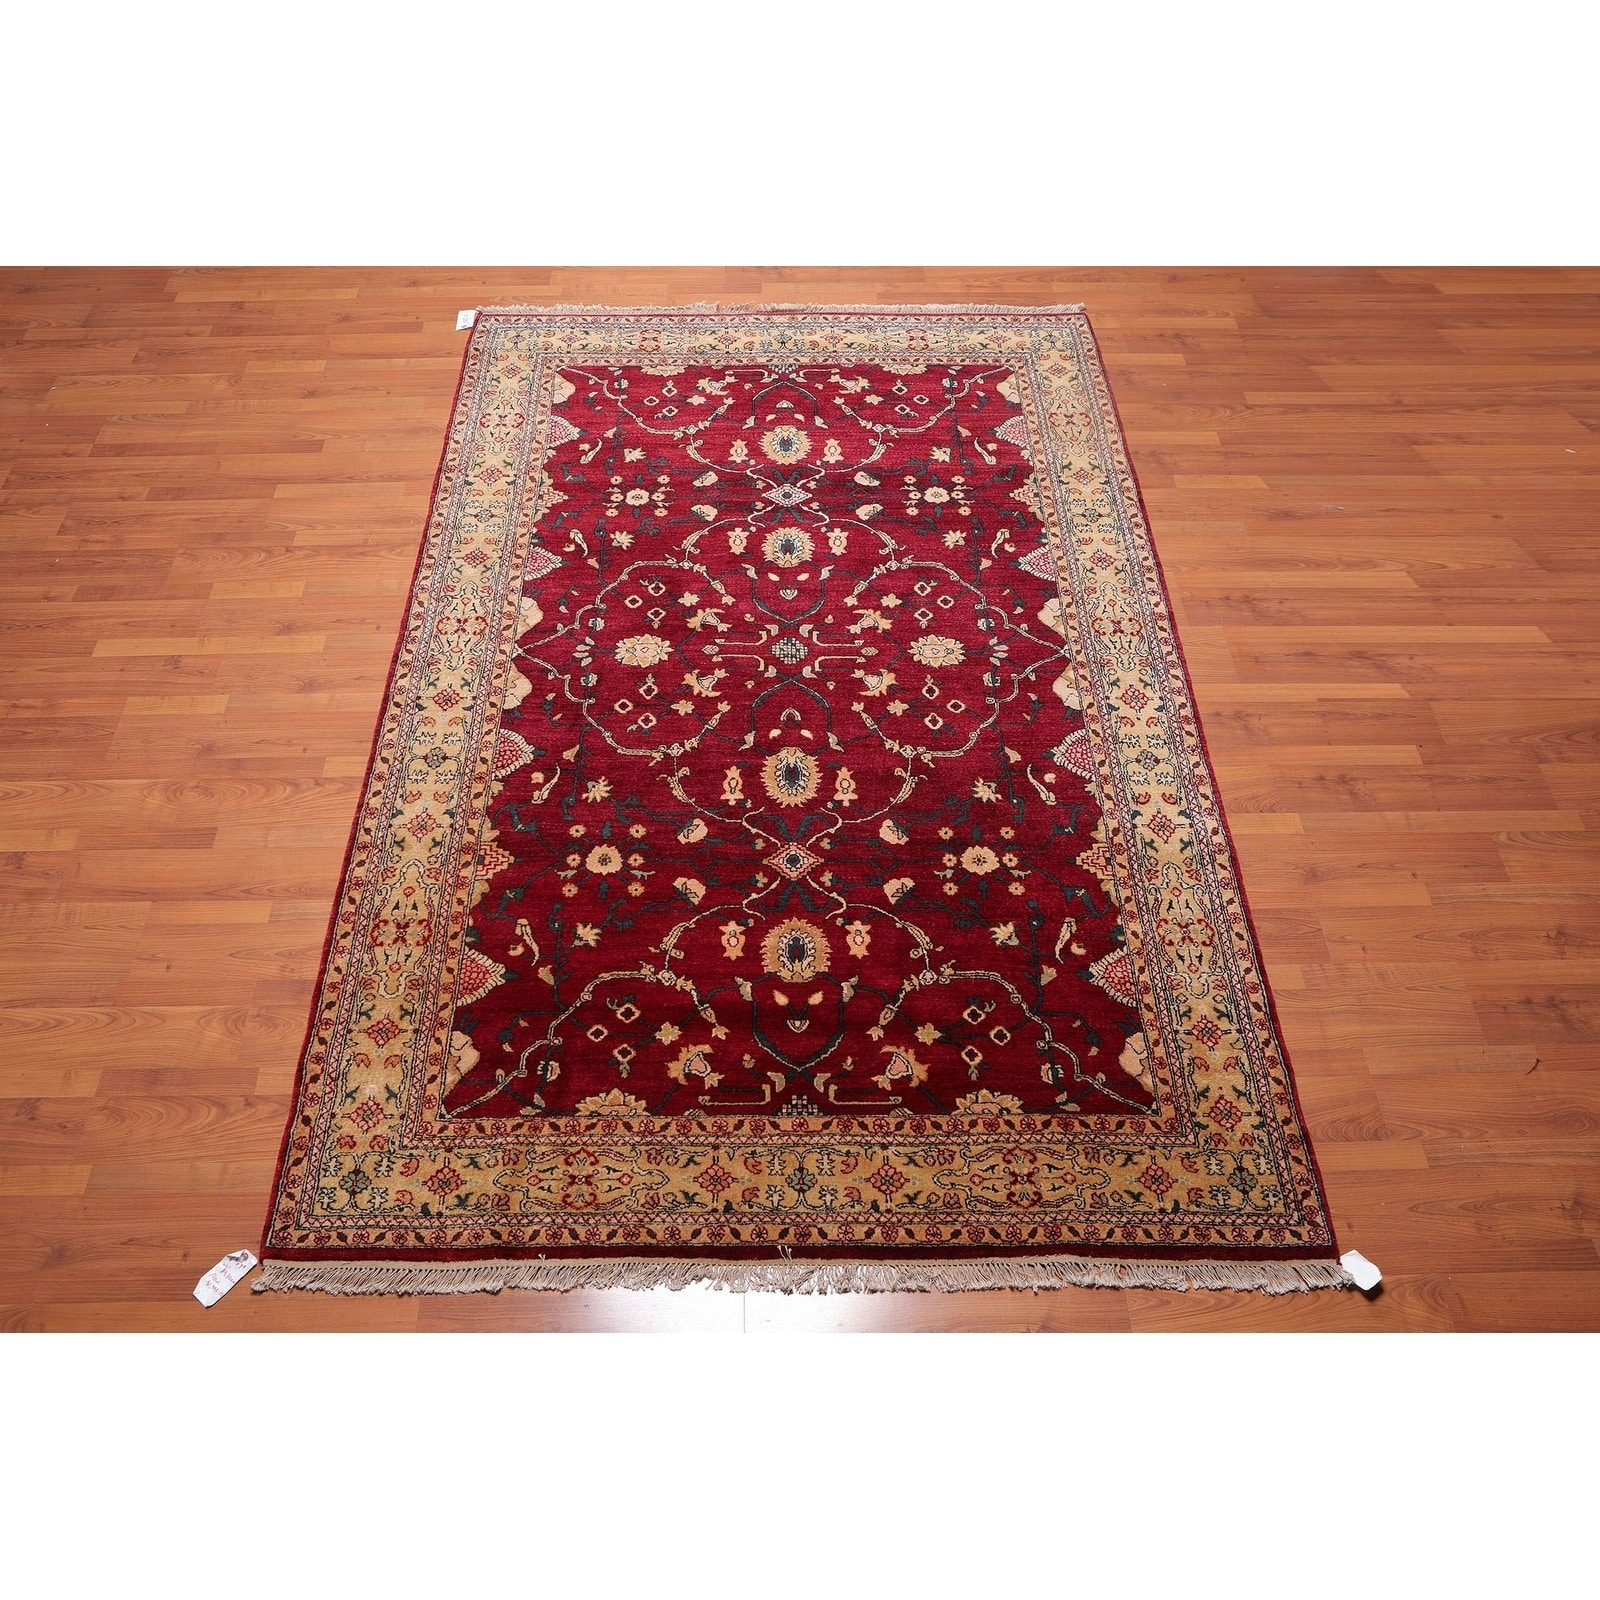 Hand Knotted Anoush Wool Persian Oriental Area Rug 6 2 X9 8 6 2 X 9 8 On Sale Overstock 27145339